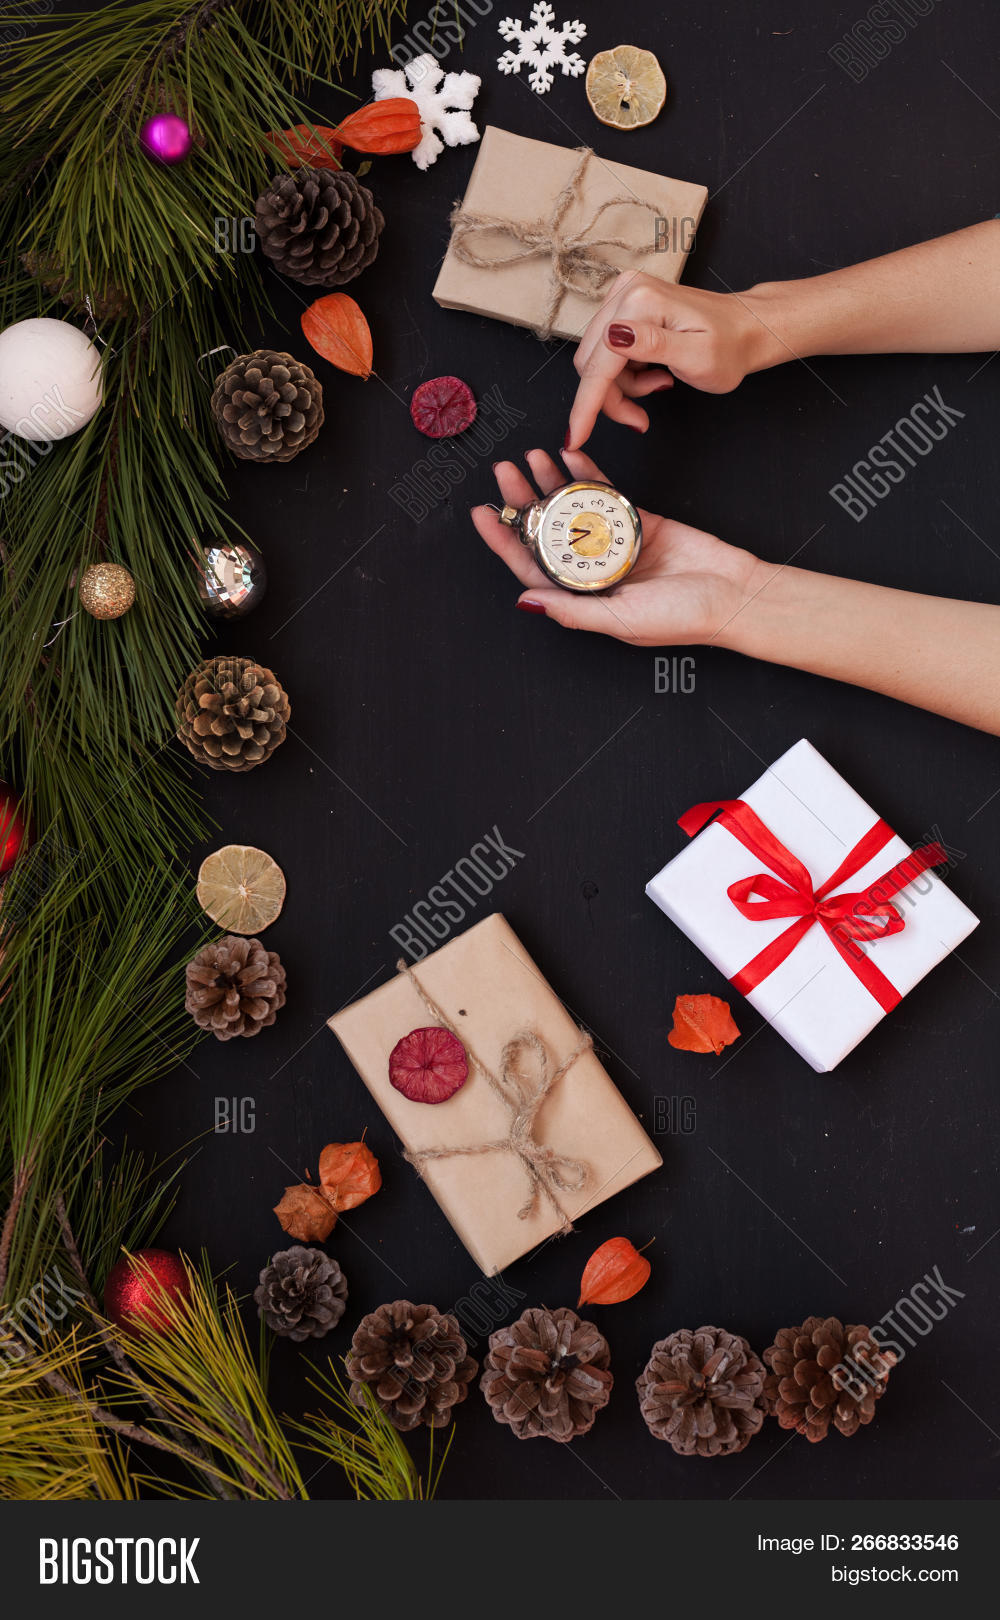 anise,background,bakery,balls,bethlehem,biscuit,branch,brown,bump,candied,candy,canes,card,cashew,christmas,cinnamon,concept,congratulations,cookie,cooking,cutters,decorative,delicacy,dessert,dough,festive,figure,food,fruit,gift,ginger,green,greeting,hot,light,mandarins,marshmallow,new,pastries,products,raisins,refreshments,sweets,table,toys,traditional,vintage,winter,year,year27s